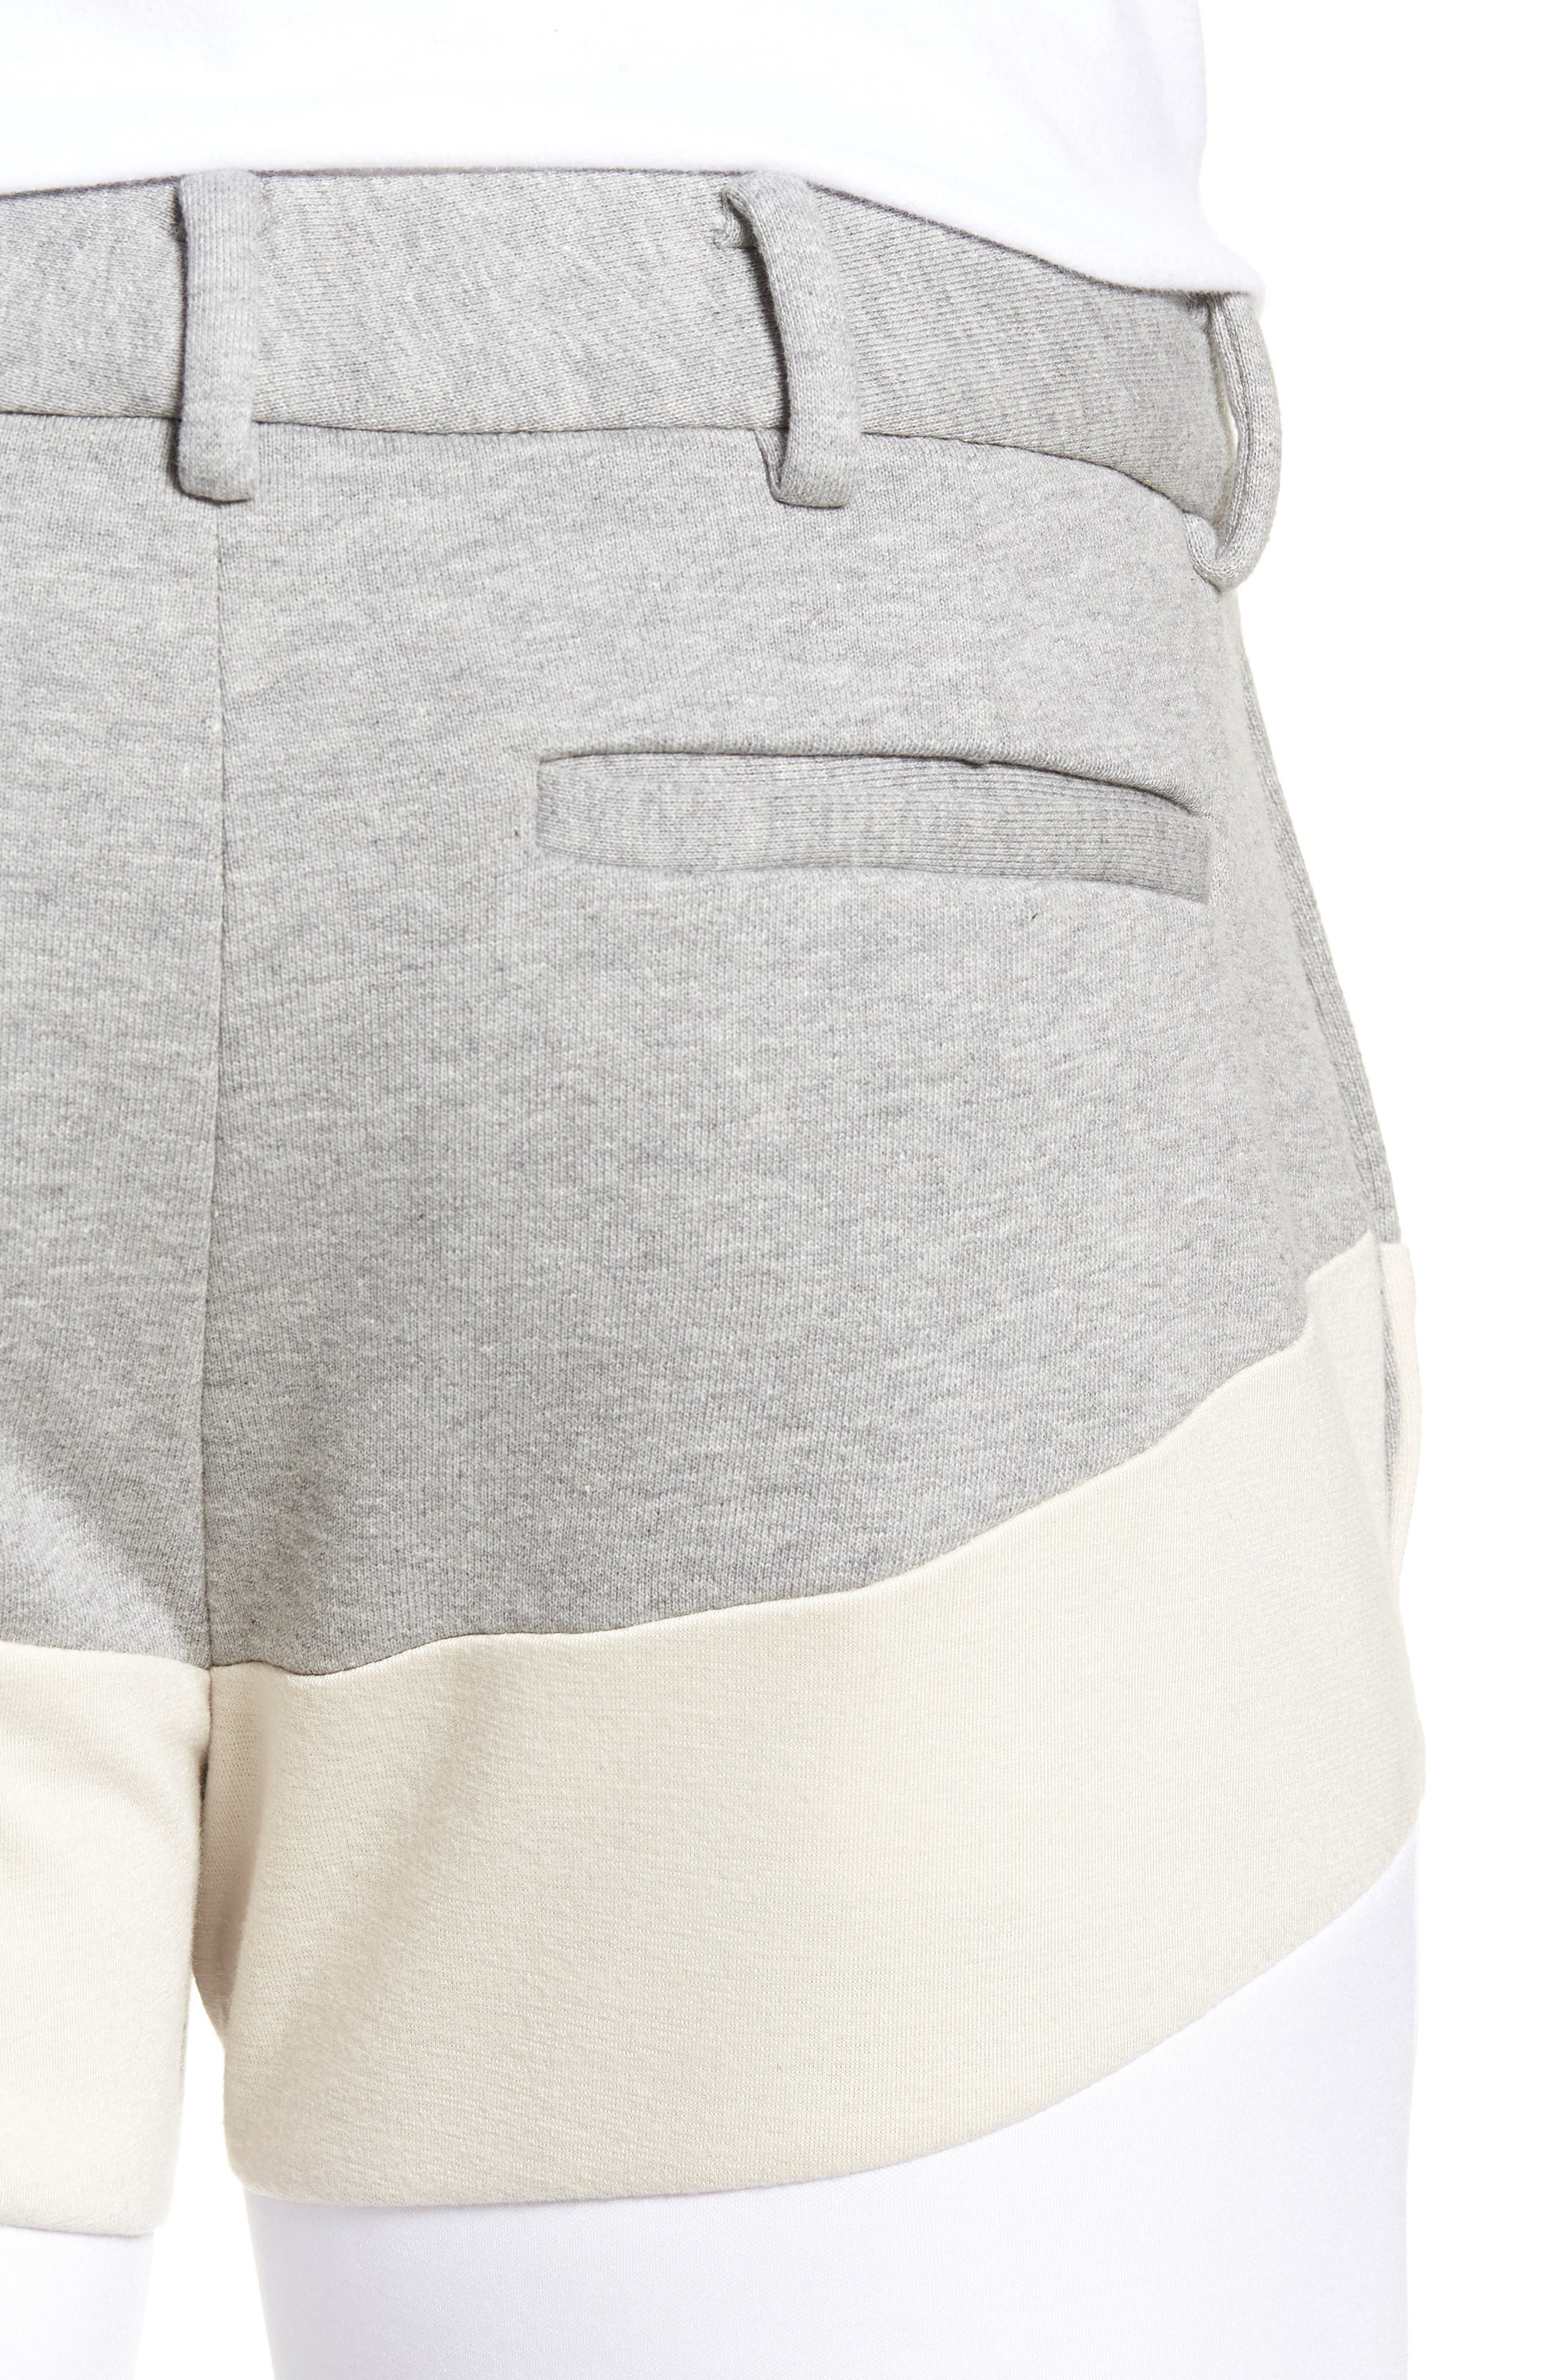 Chevron Colorblock Shorts,                             Alternate thumbnail 4, color,                             HEATHER GREY